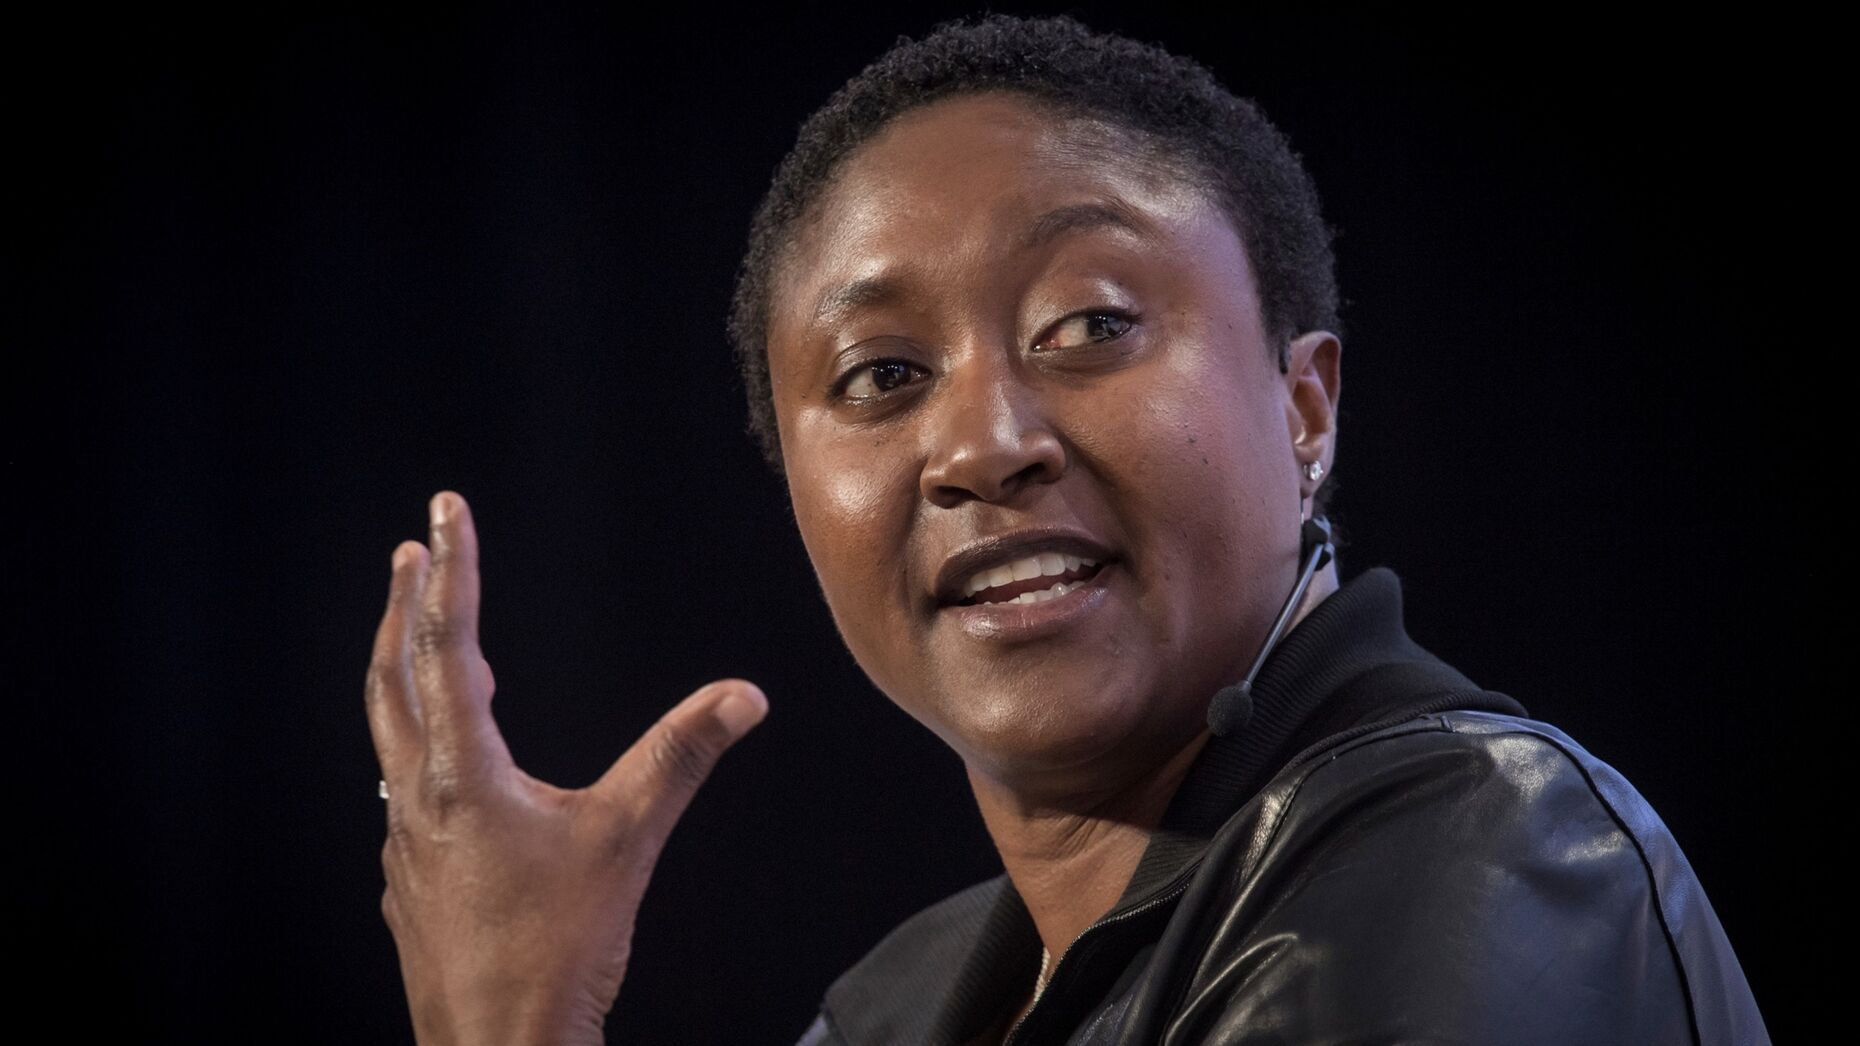 Zoox CEO Aicha Evans. Photo by Bloomberg